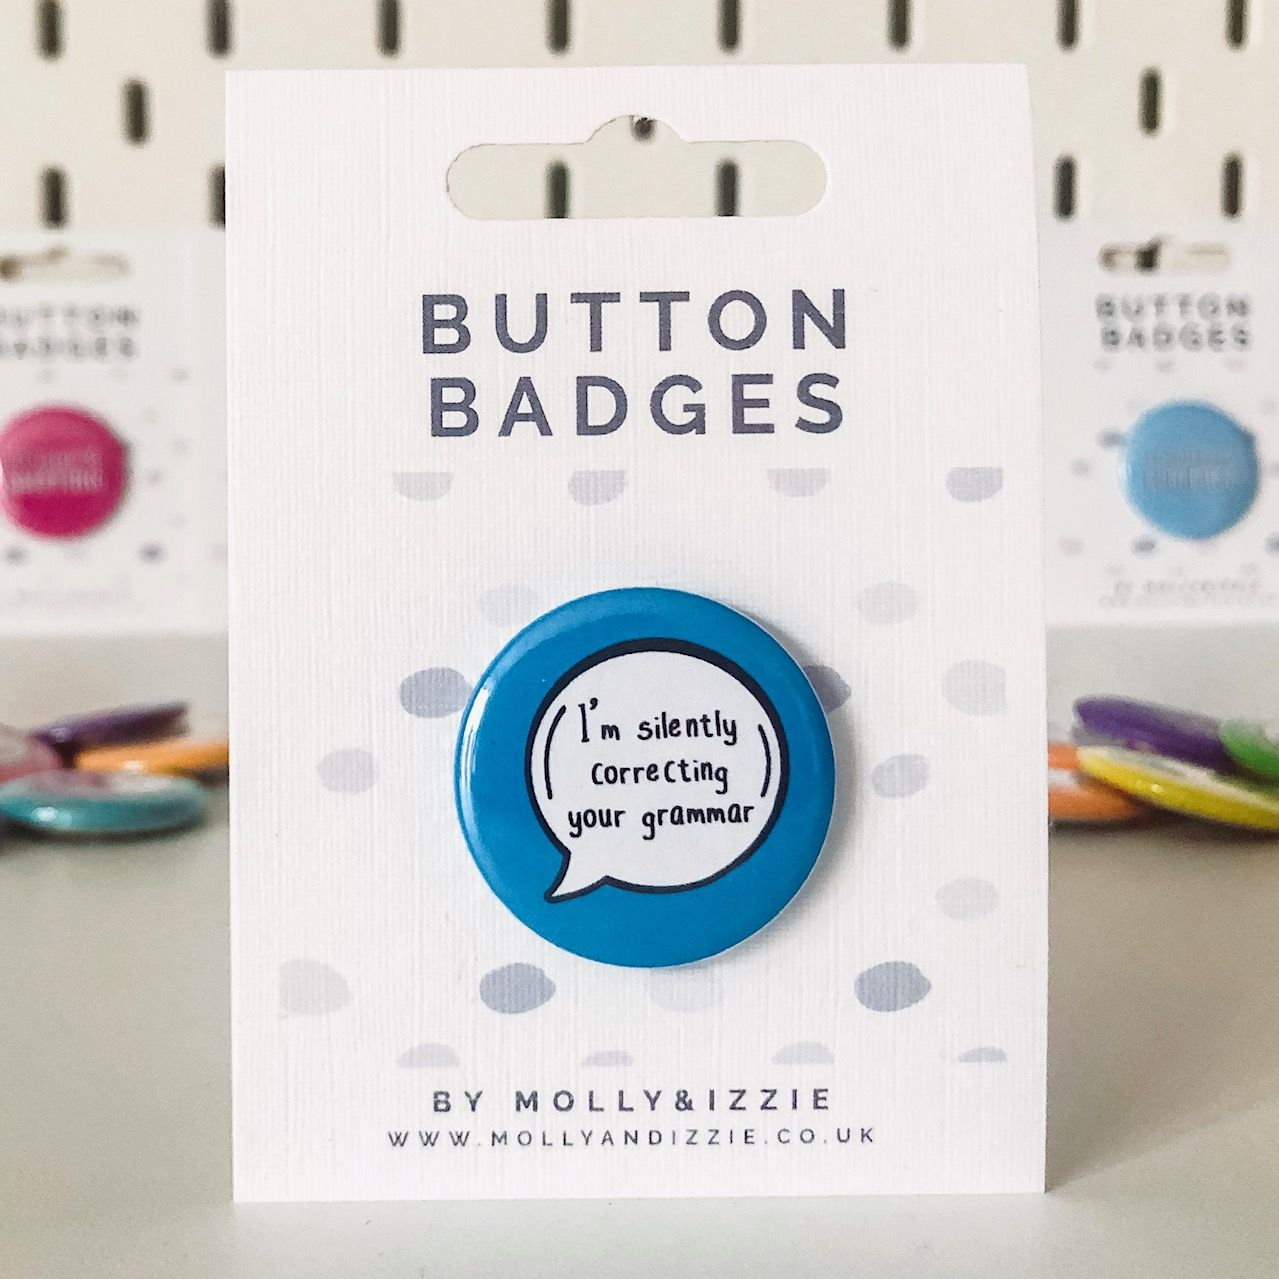 by Molly & Izzie I'm Silently Correcting Your Grammar Button Badge